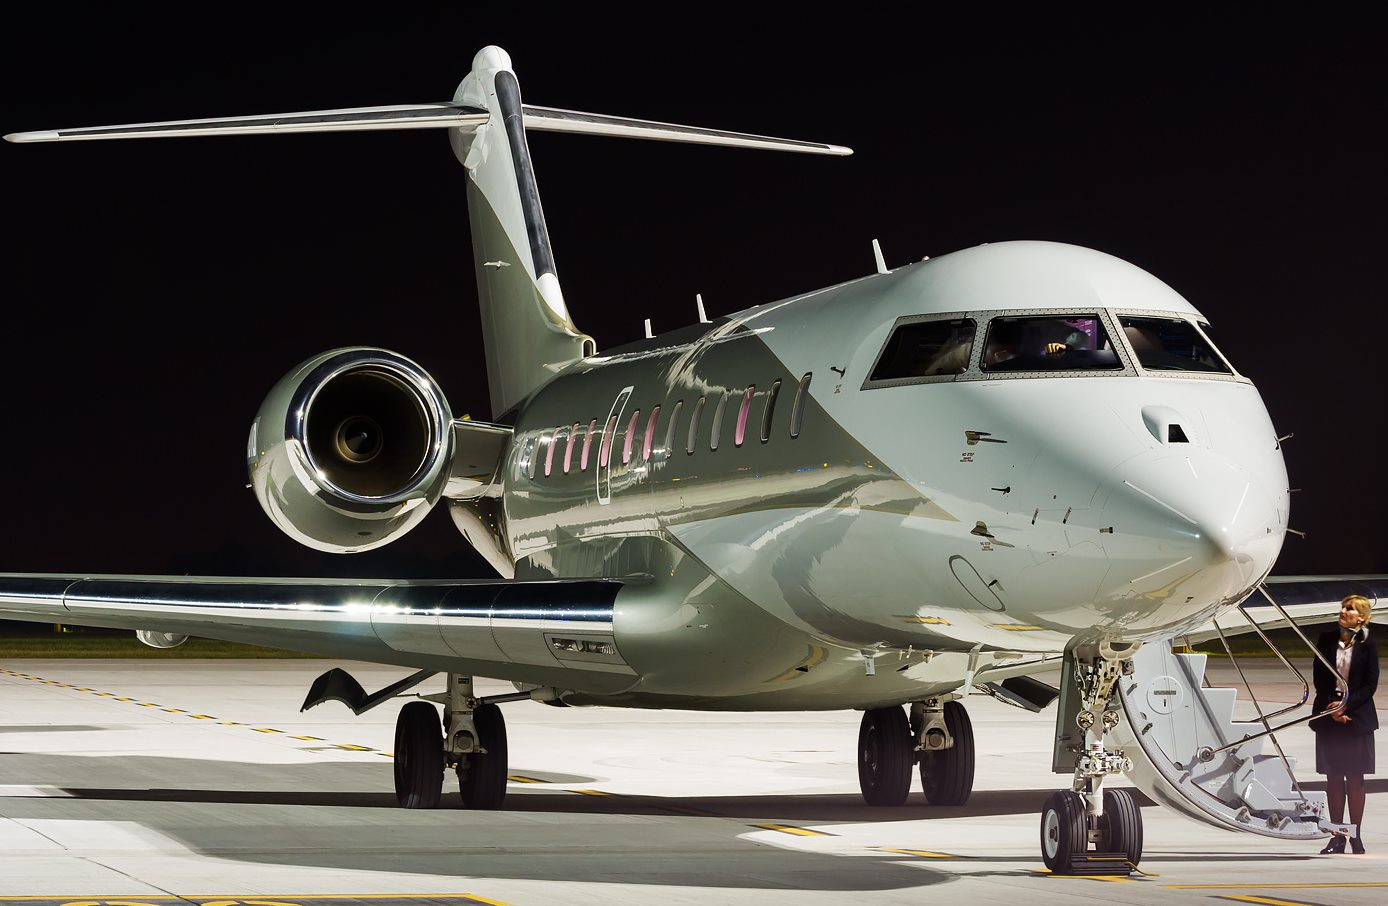 Tyrus Wings re-brands as Sunstar Jets Inc.